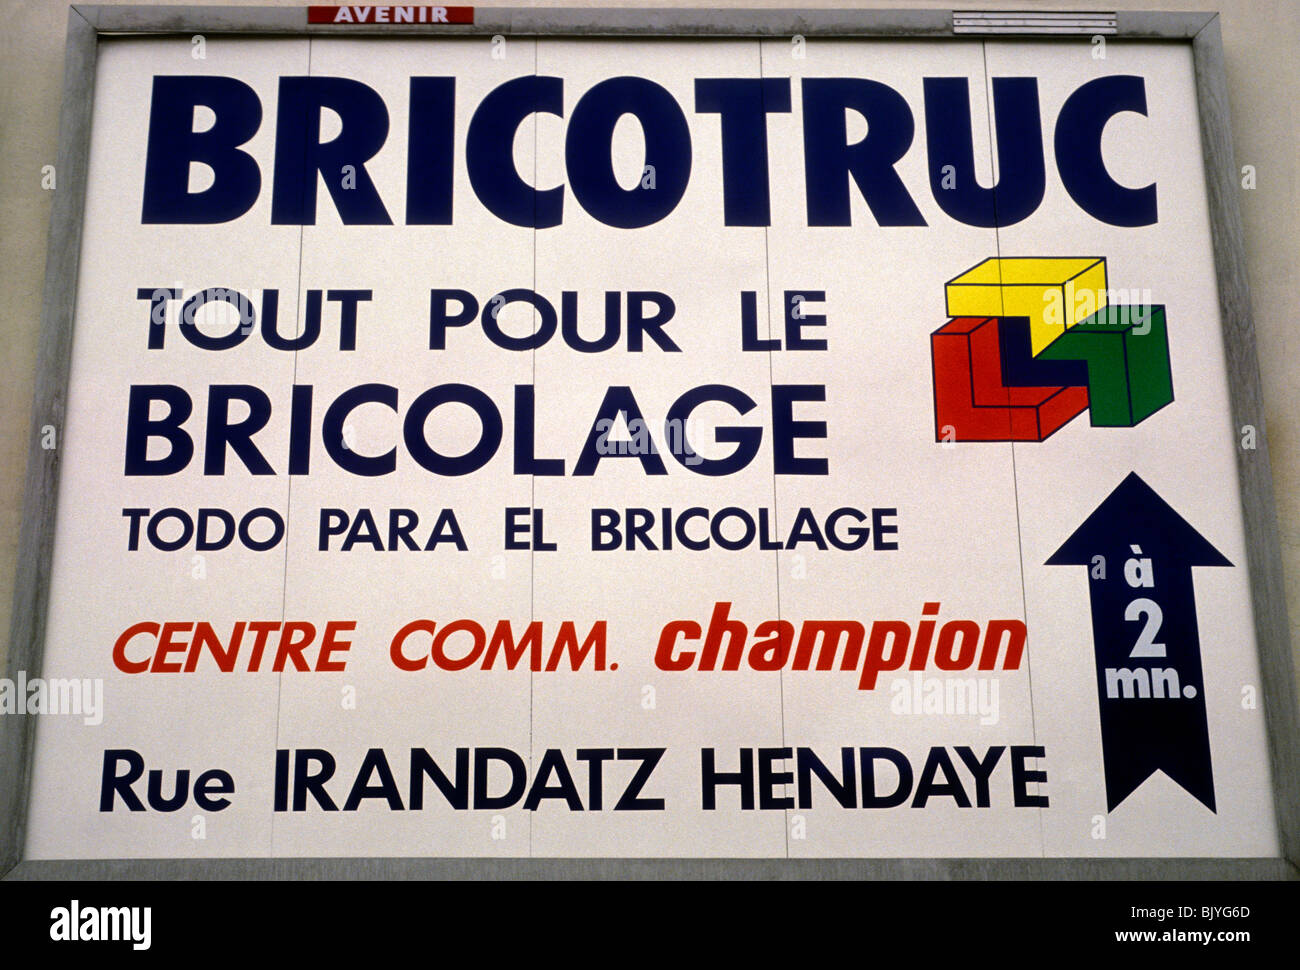 Bricotruc do it yourself hardware store do it yourself hardware bricotruc do it yourself hardware store do it yourself hardware store diy french basque country town of hendaye hendaye france europe solutioingenieria Choice Image